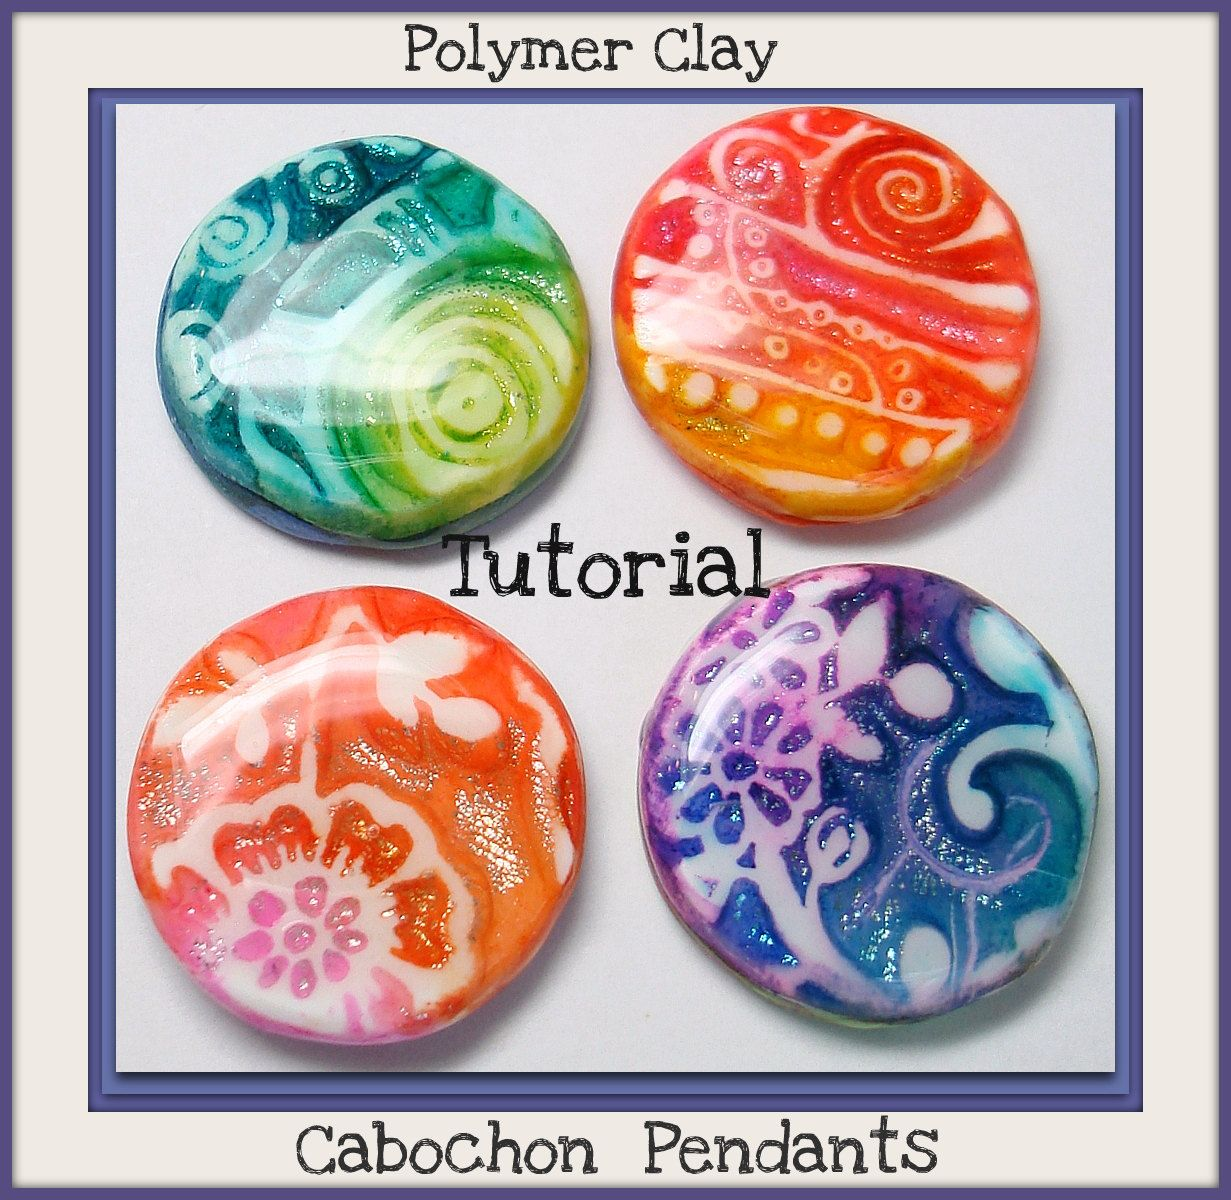 This tutorial will guide you step by step, how-to create Polymer Clay Cabochon Pendants, it includes 28 pages of easy to understand instructions, and 42 color images, FAQ & Tip Section, Gallery photos of completed projects.